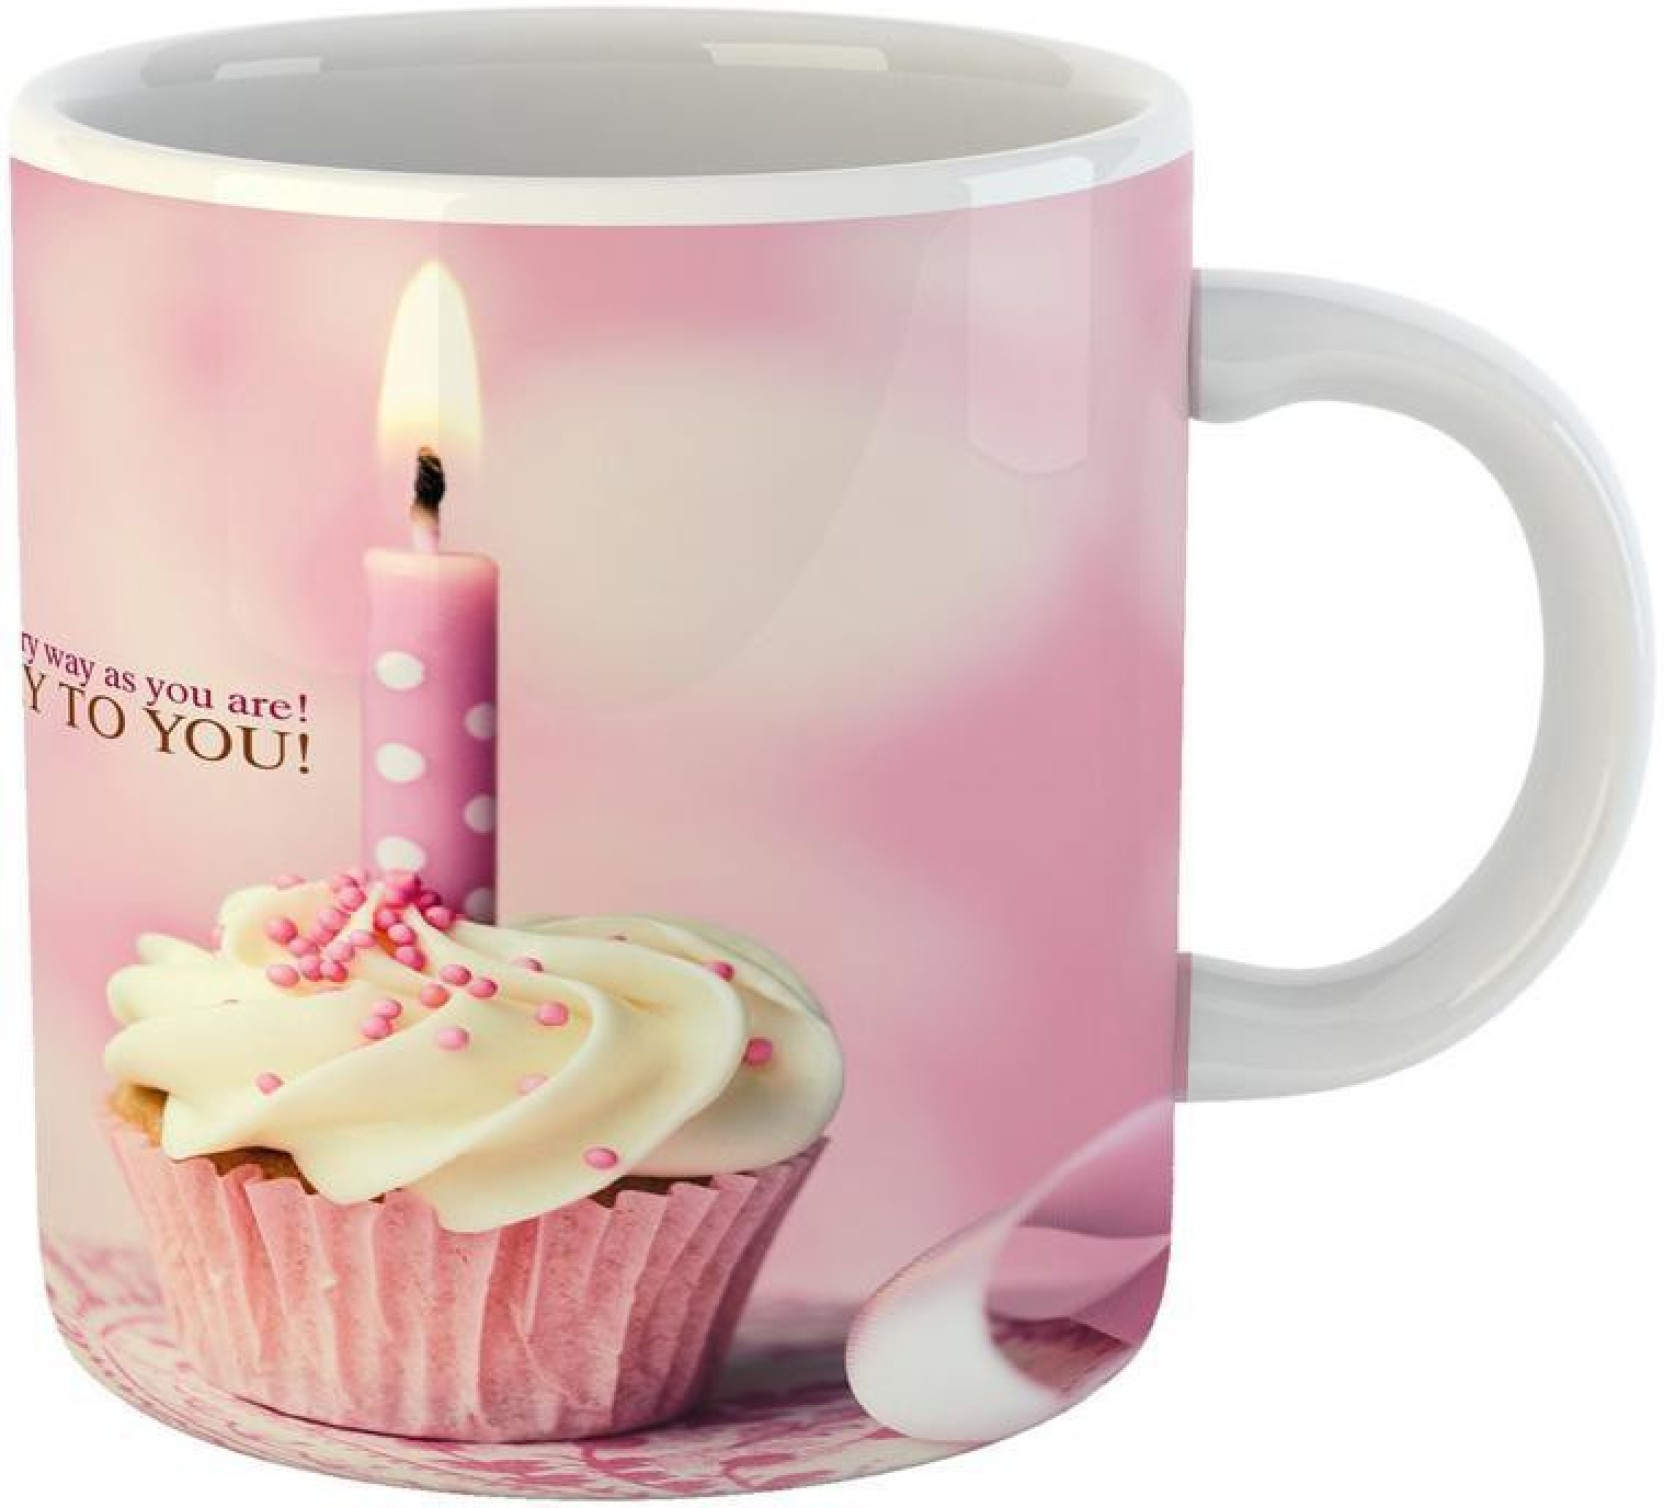 GiftOwl Happy Birthday Pink Cake Design Coffee For Of Friends Girlfriend Boyfriend Giftfamily With Glossy Finish Vibrant Print 350 Ml Capacity